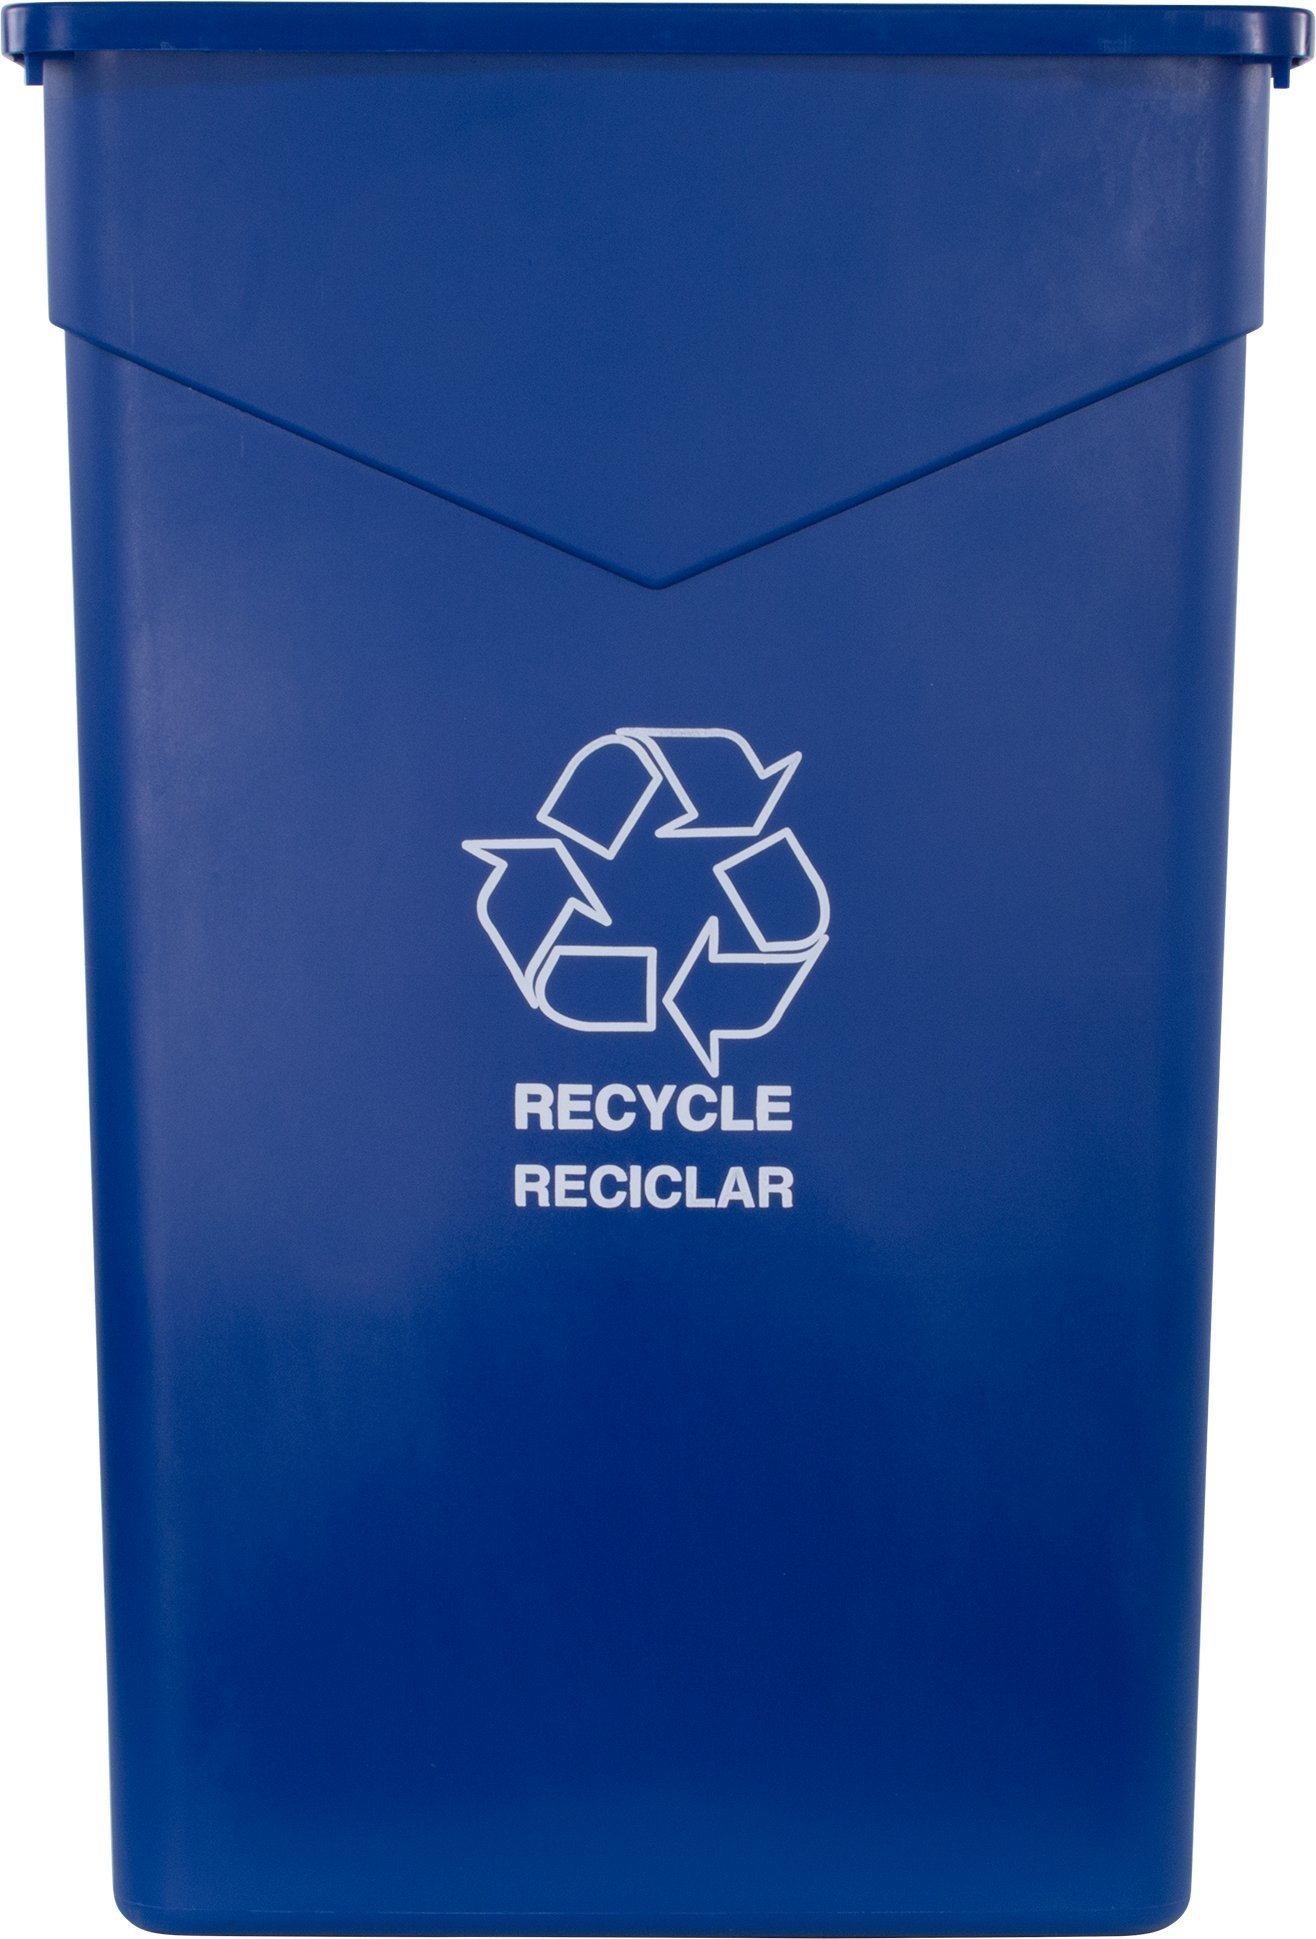 Carlisle 342023REC14 TrimLine LLDPE Recycle Can, 23 Gallon Capacity, 20'' Length x 11'' Width x 29.88'' Height, Blue by Carlisle (Image #2)